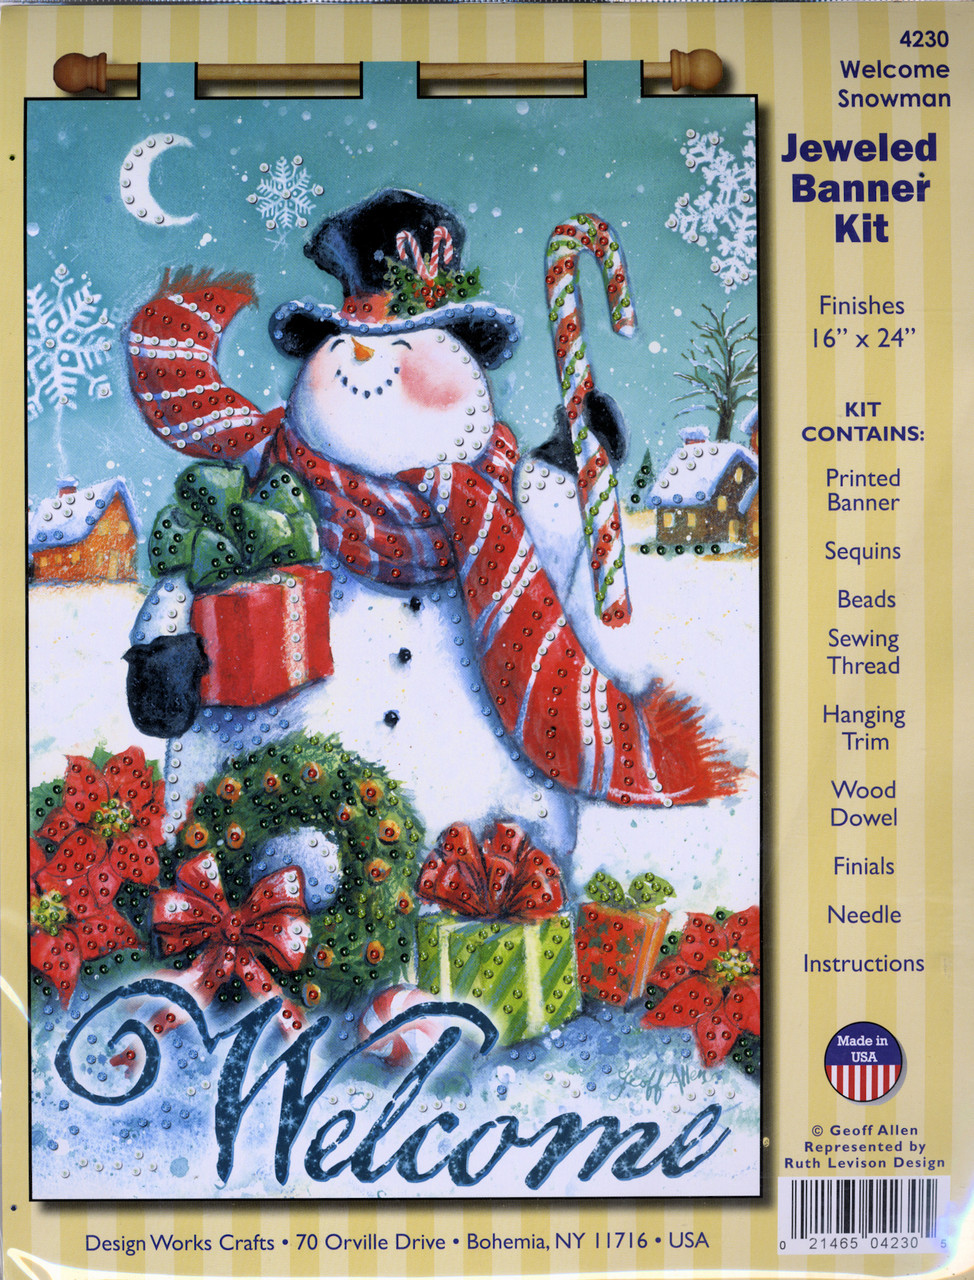 Design Works - Welcome Snowman Jeweled Banner